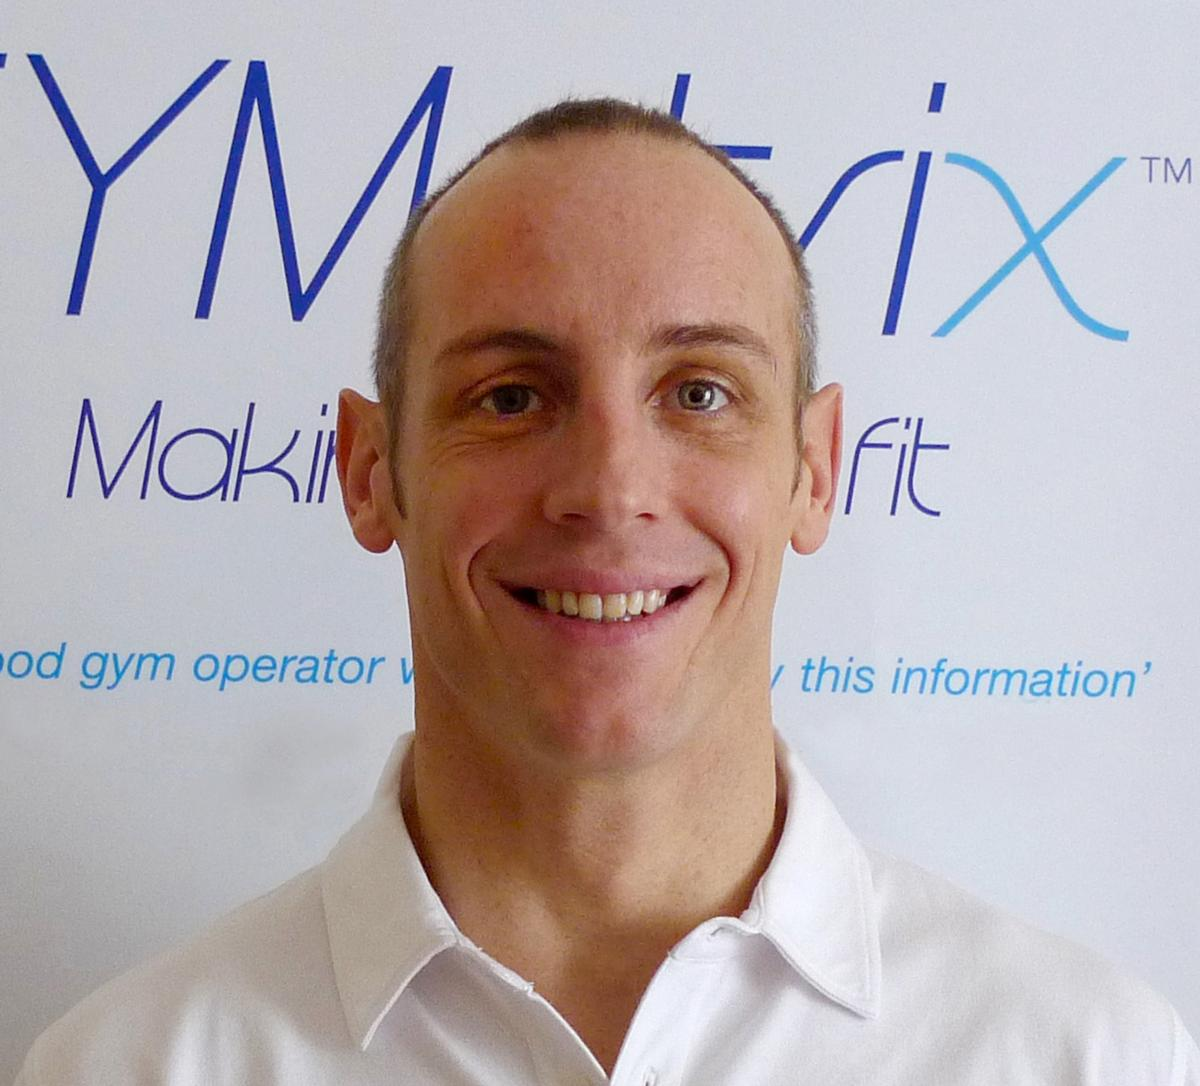 GYMetrix founder Rory McGown is overseeing a major international expansion